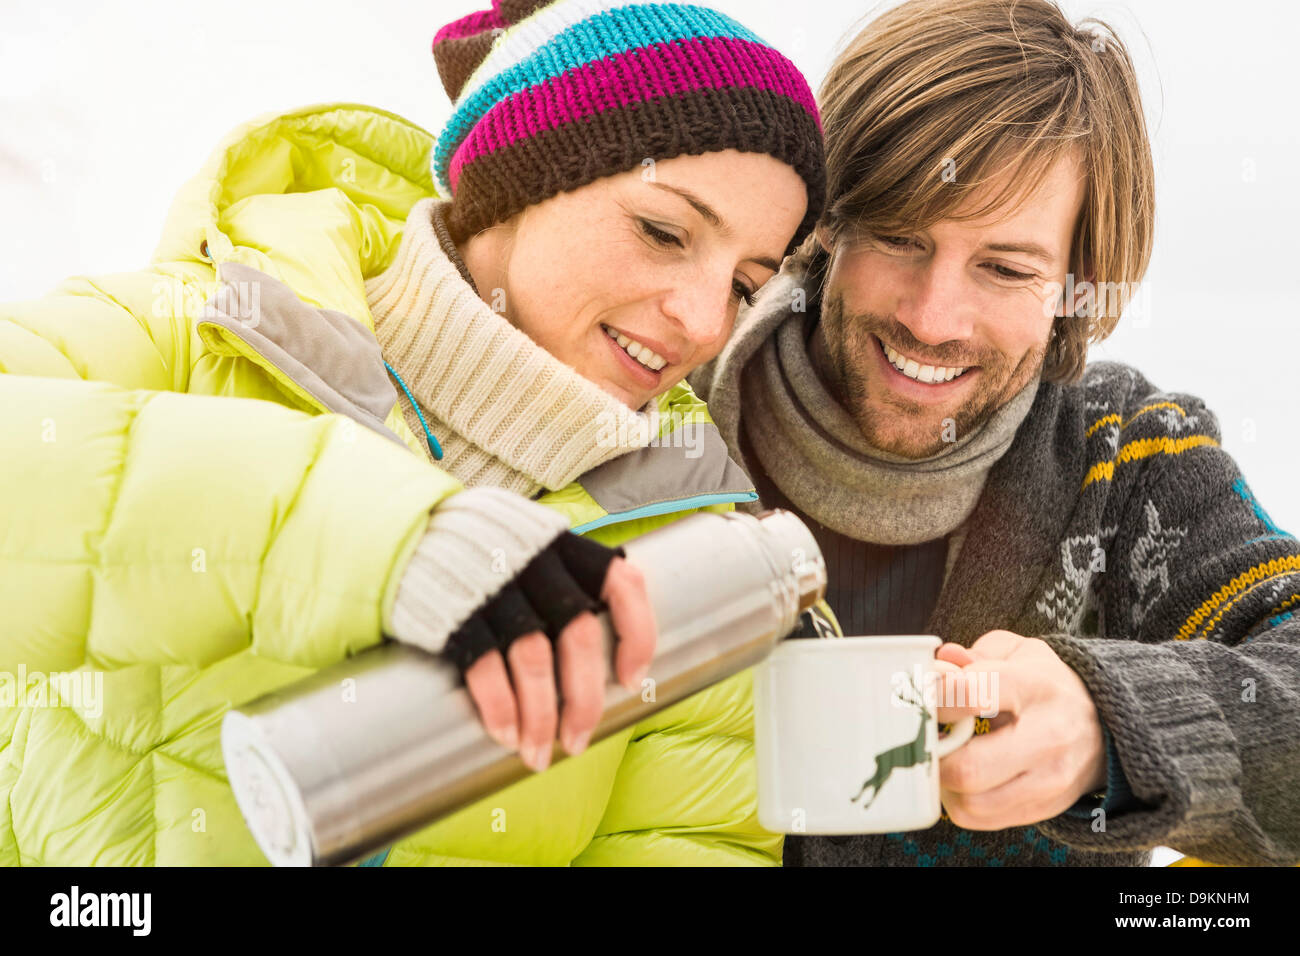 Woman pouring hot drink from flask, man holding mug - Stock Image